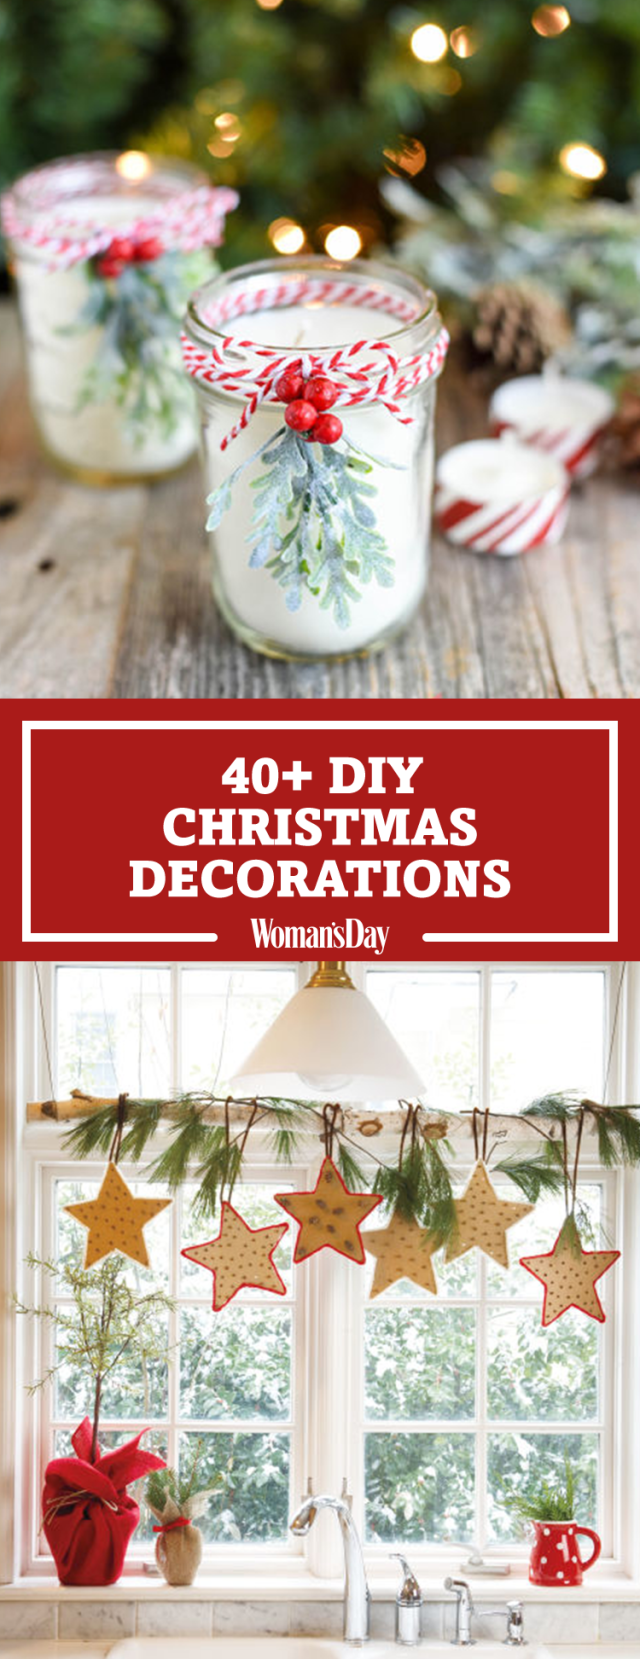 47 Easy DIY Christmas Decorations - Homemade Ideas for ...